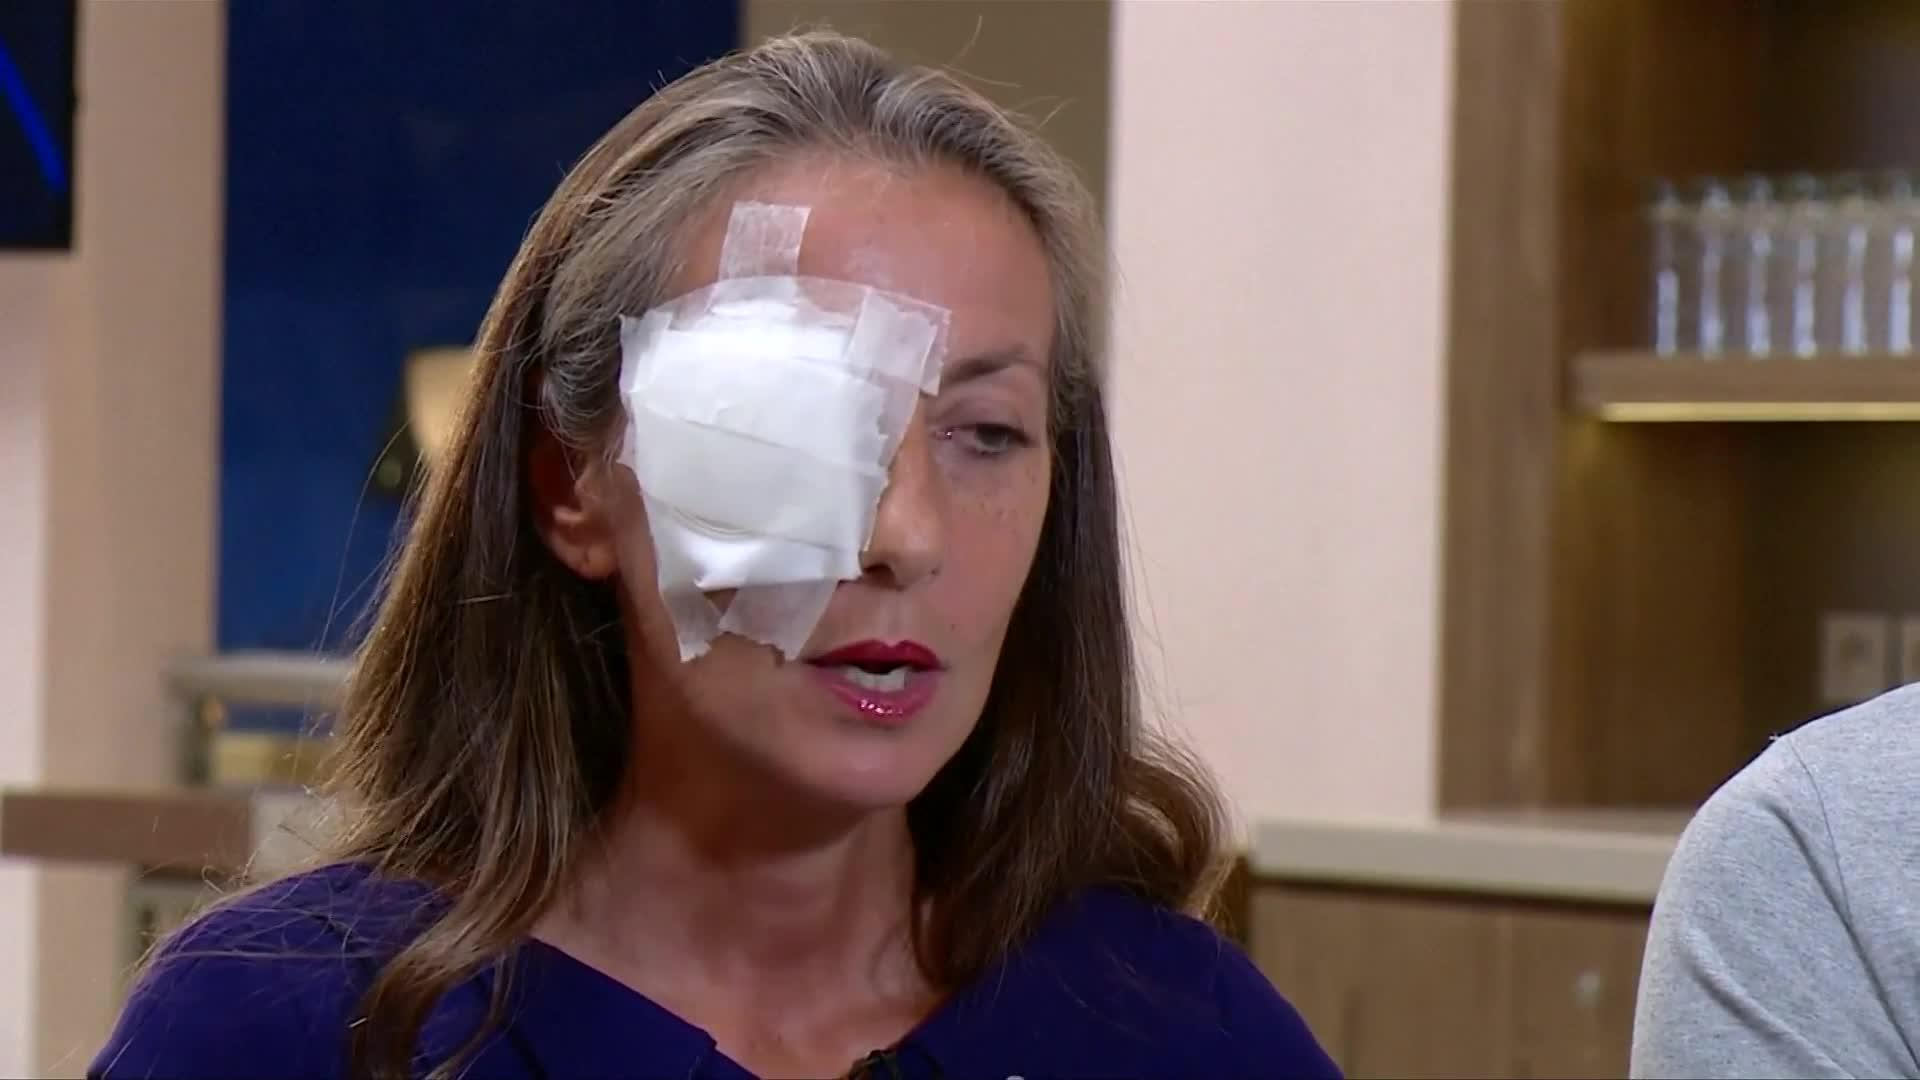 Spectator Hit By Rogue Golf Ball Days After Woman Hurt At Ryder Cup